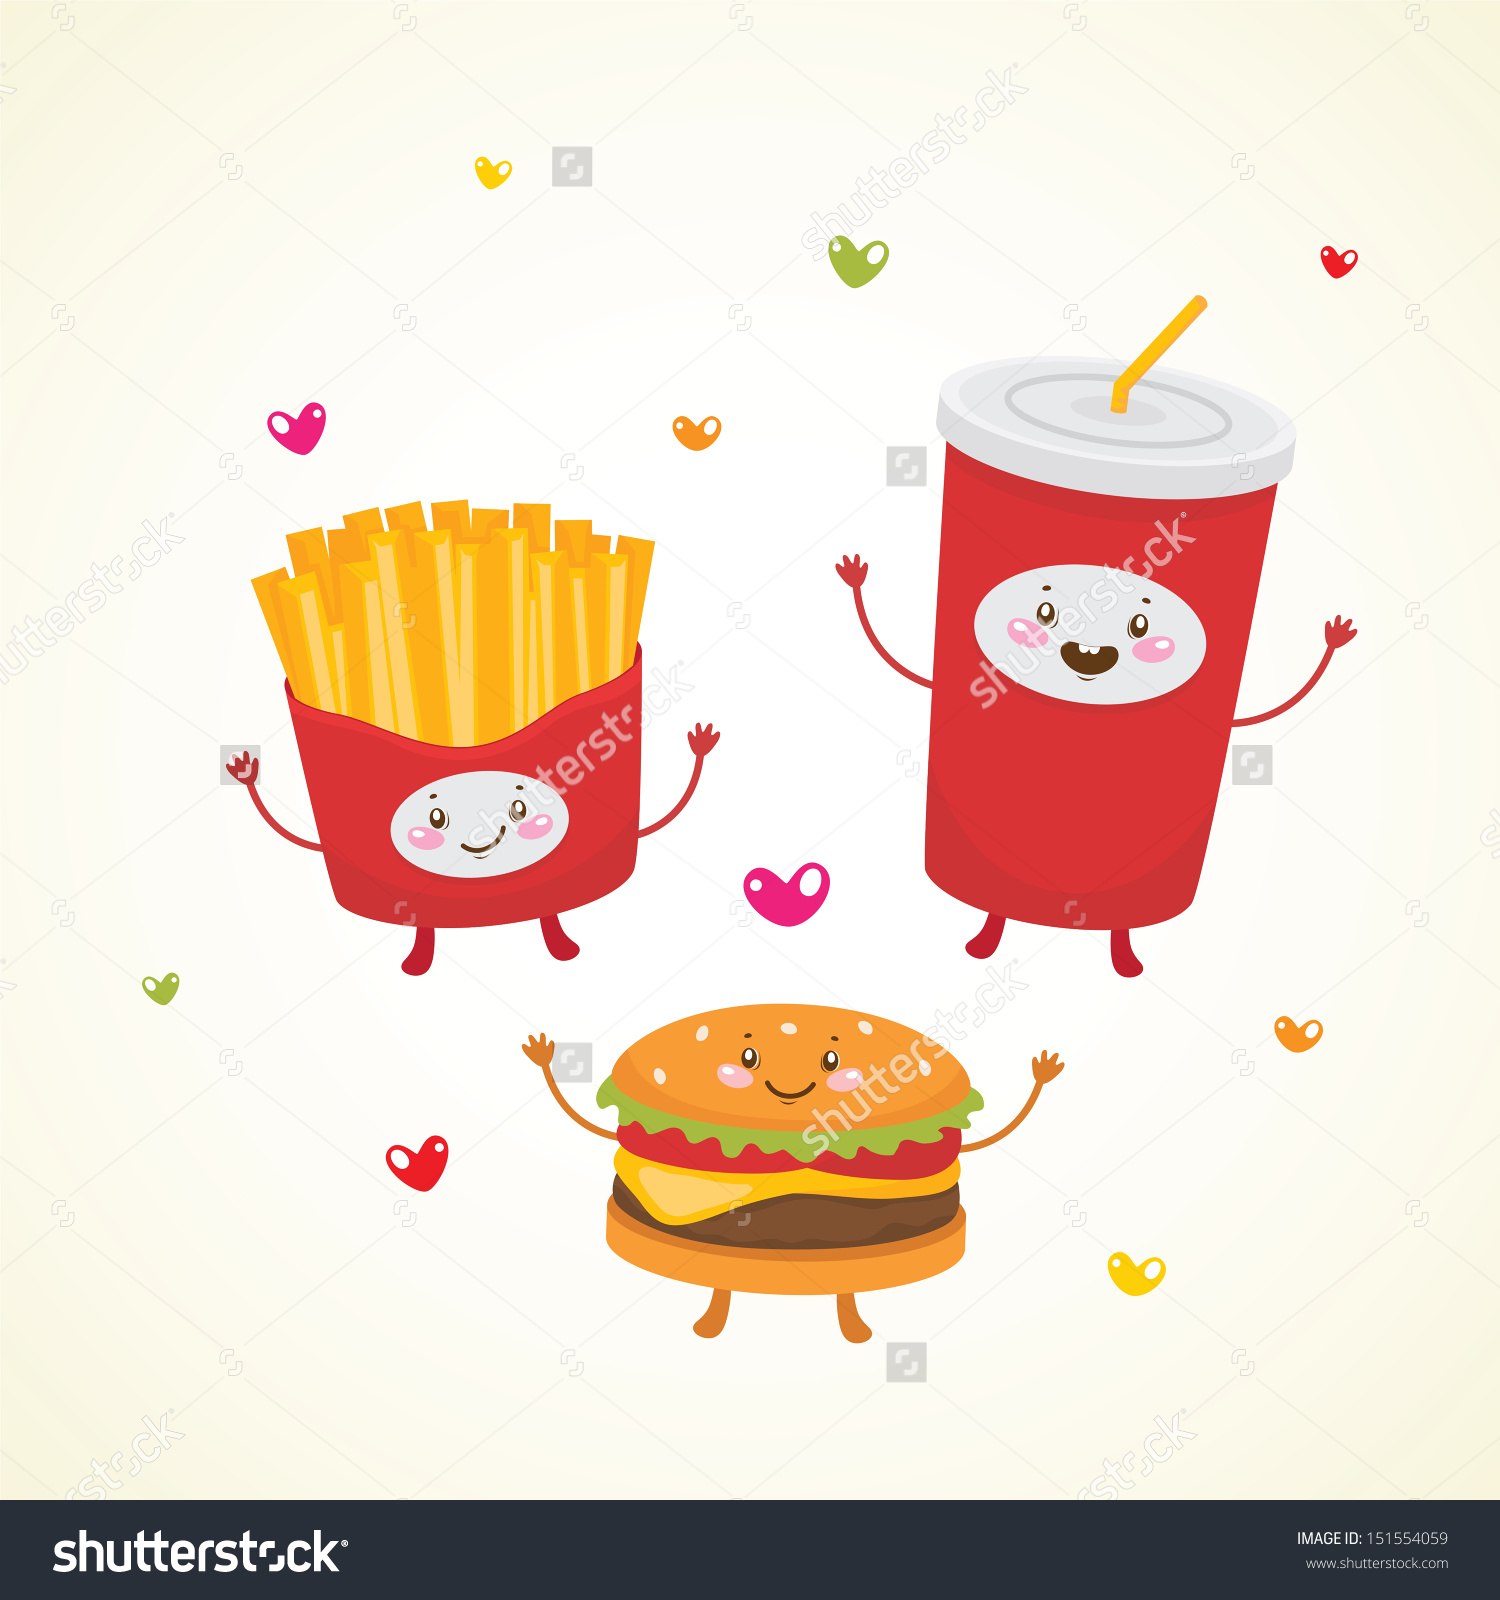 Cute Fast Food Burger Soda French Stock Vector 151554059.